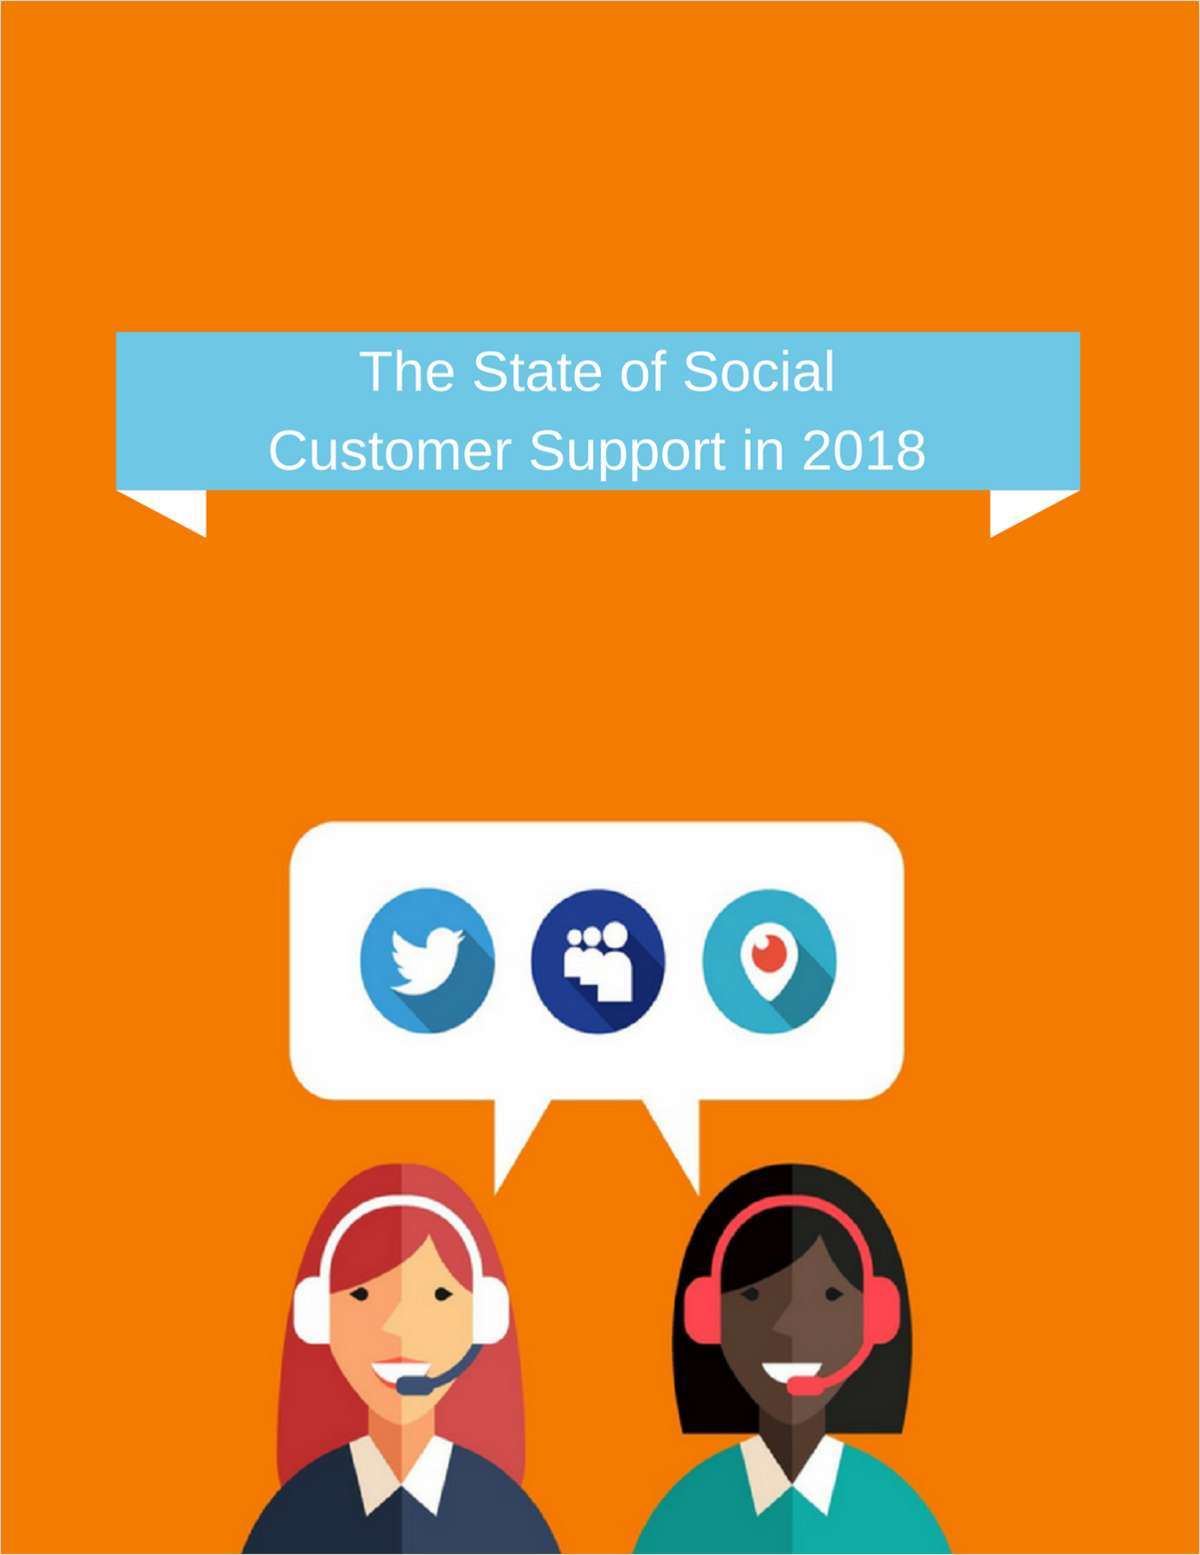 The State of Social Customer Support in 2018